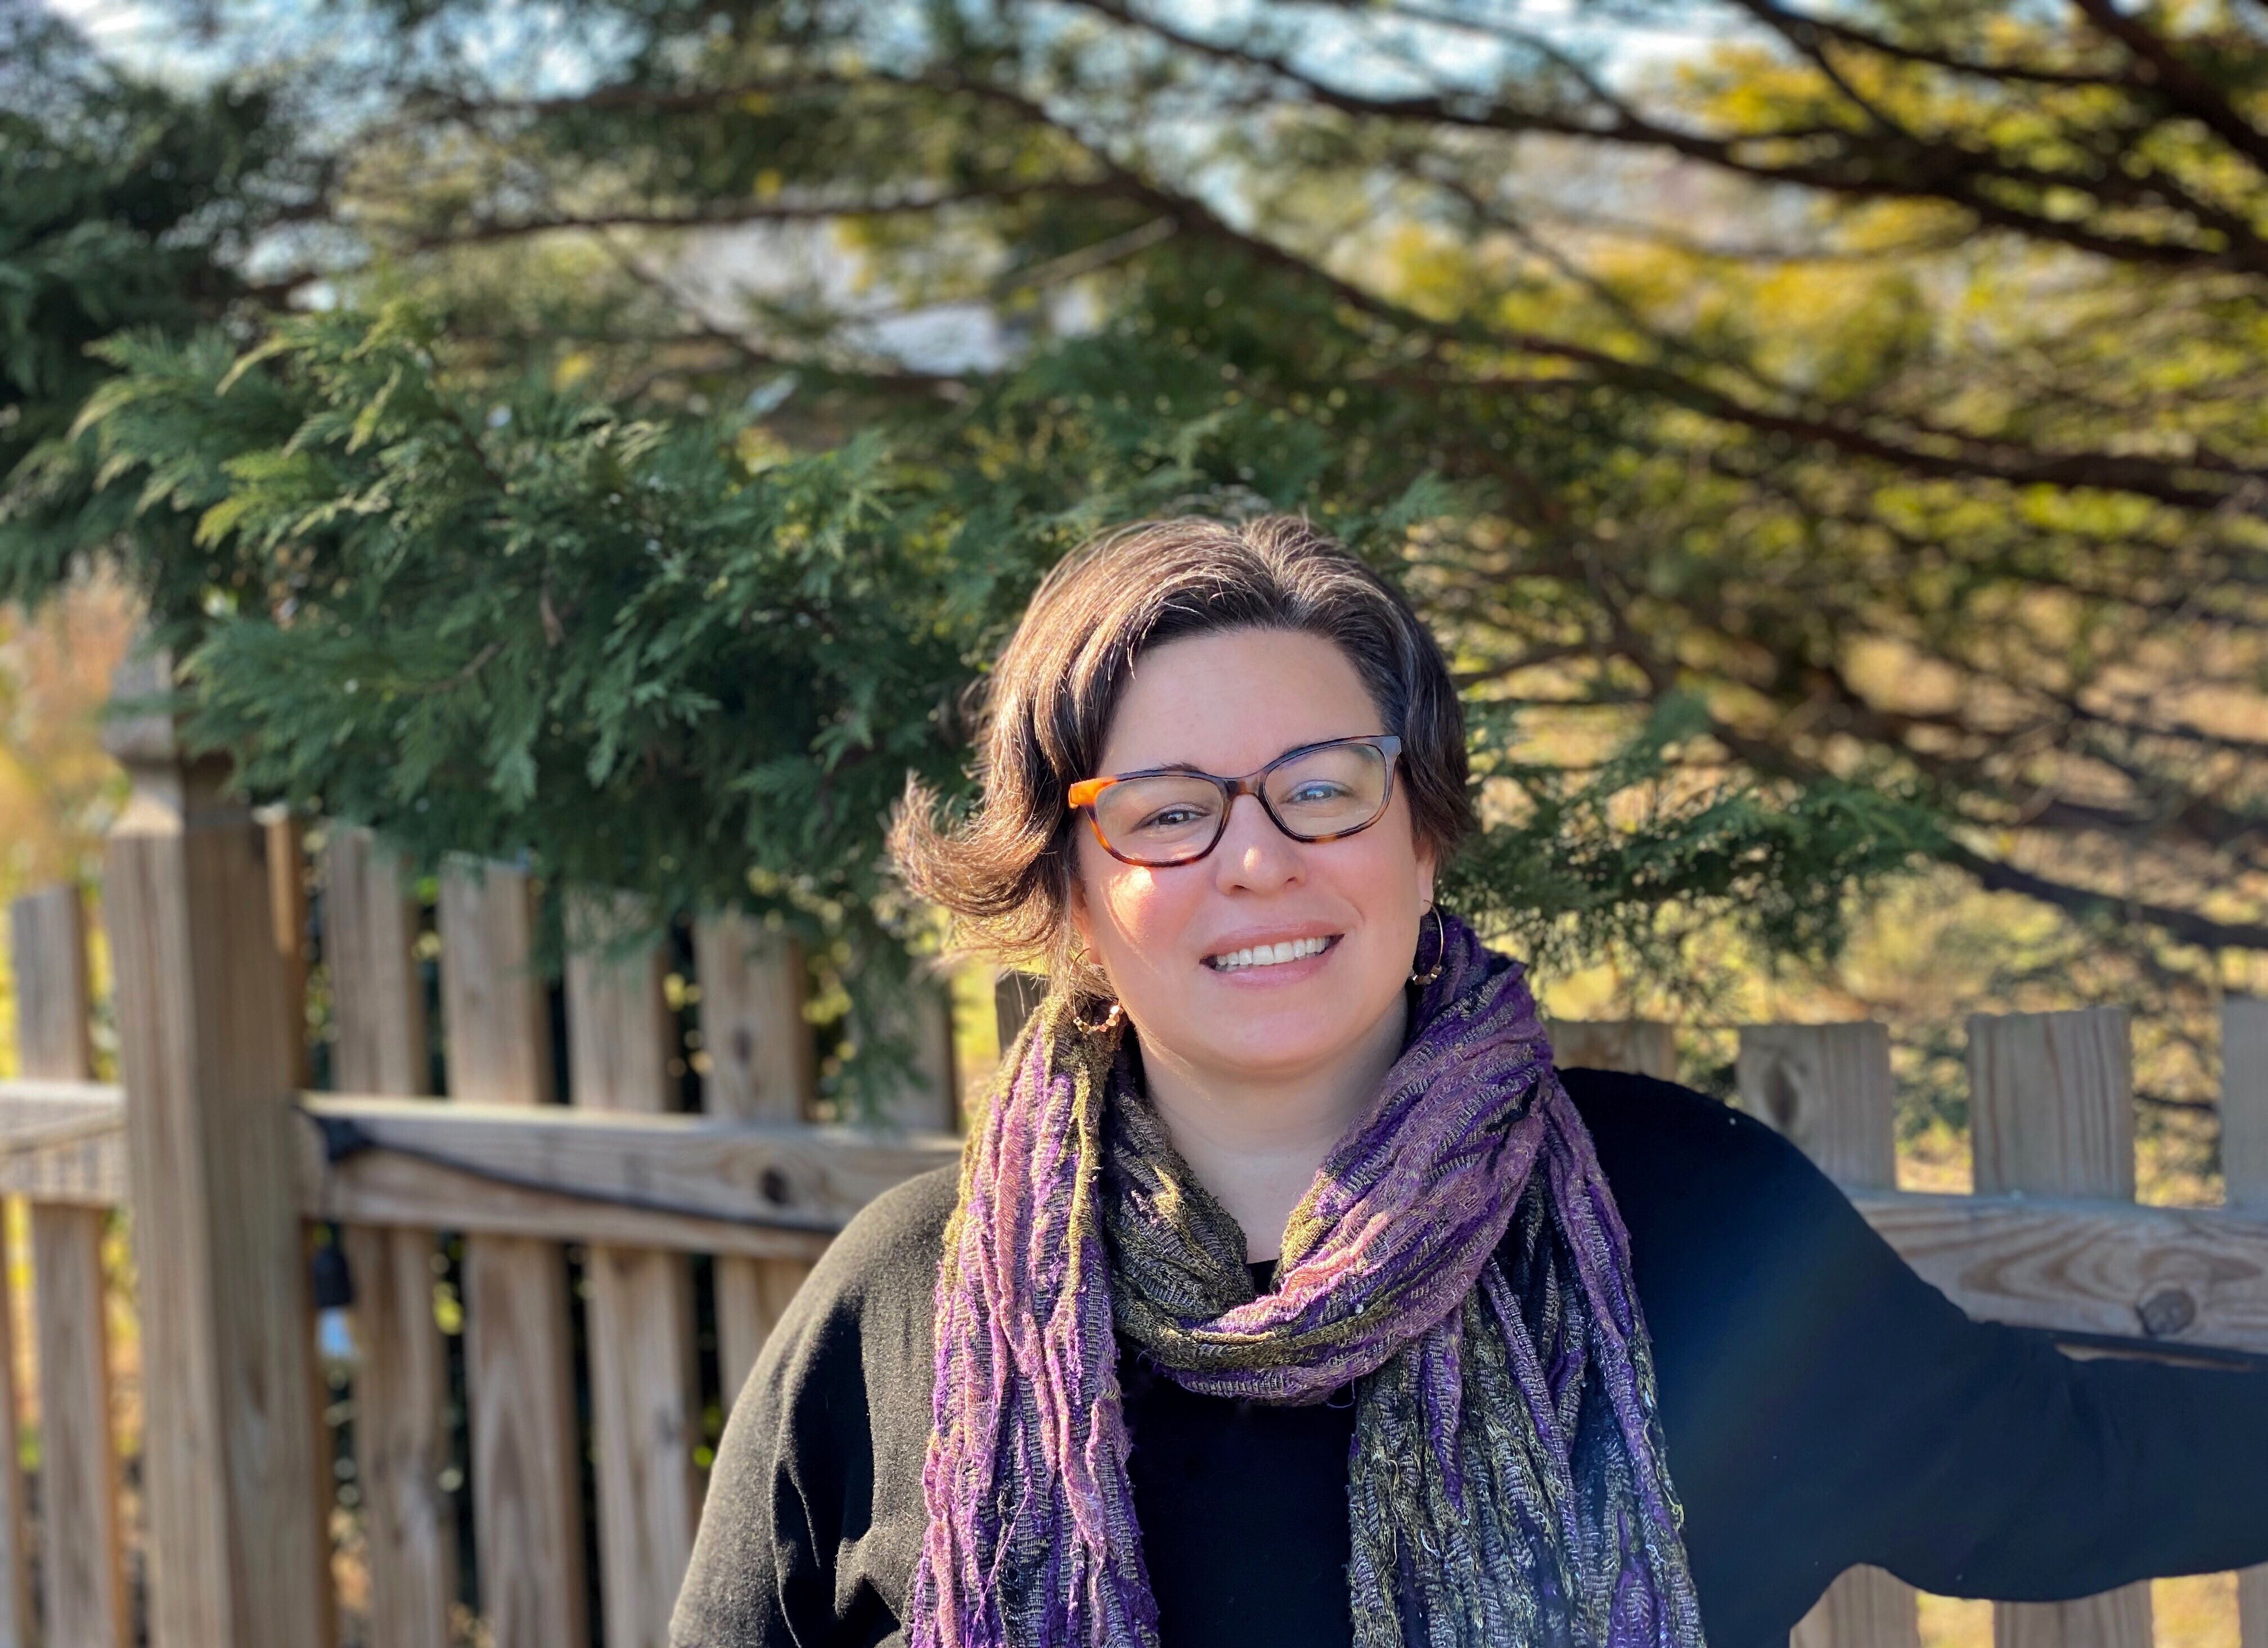 Dudeck Brings Focus to Agritourism; Appointed to Maryland Agriculture Commission